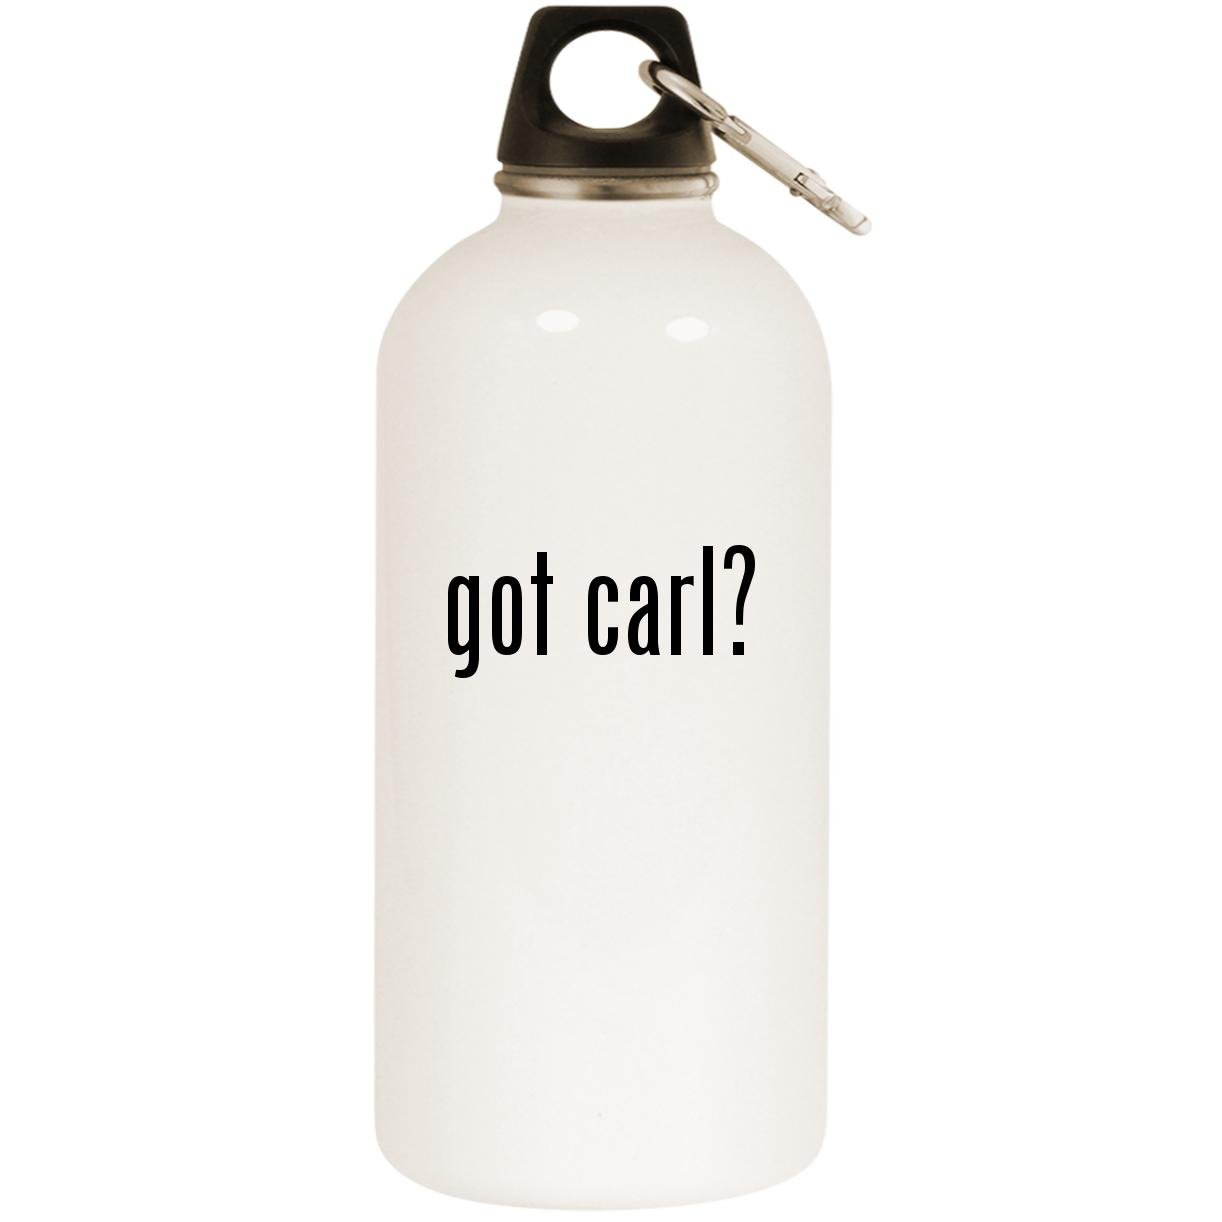 got carl? - White 20oz Stainless Steel Water Bottle with Carabiner